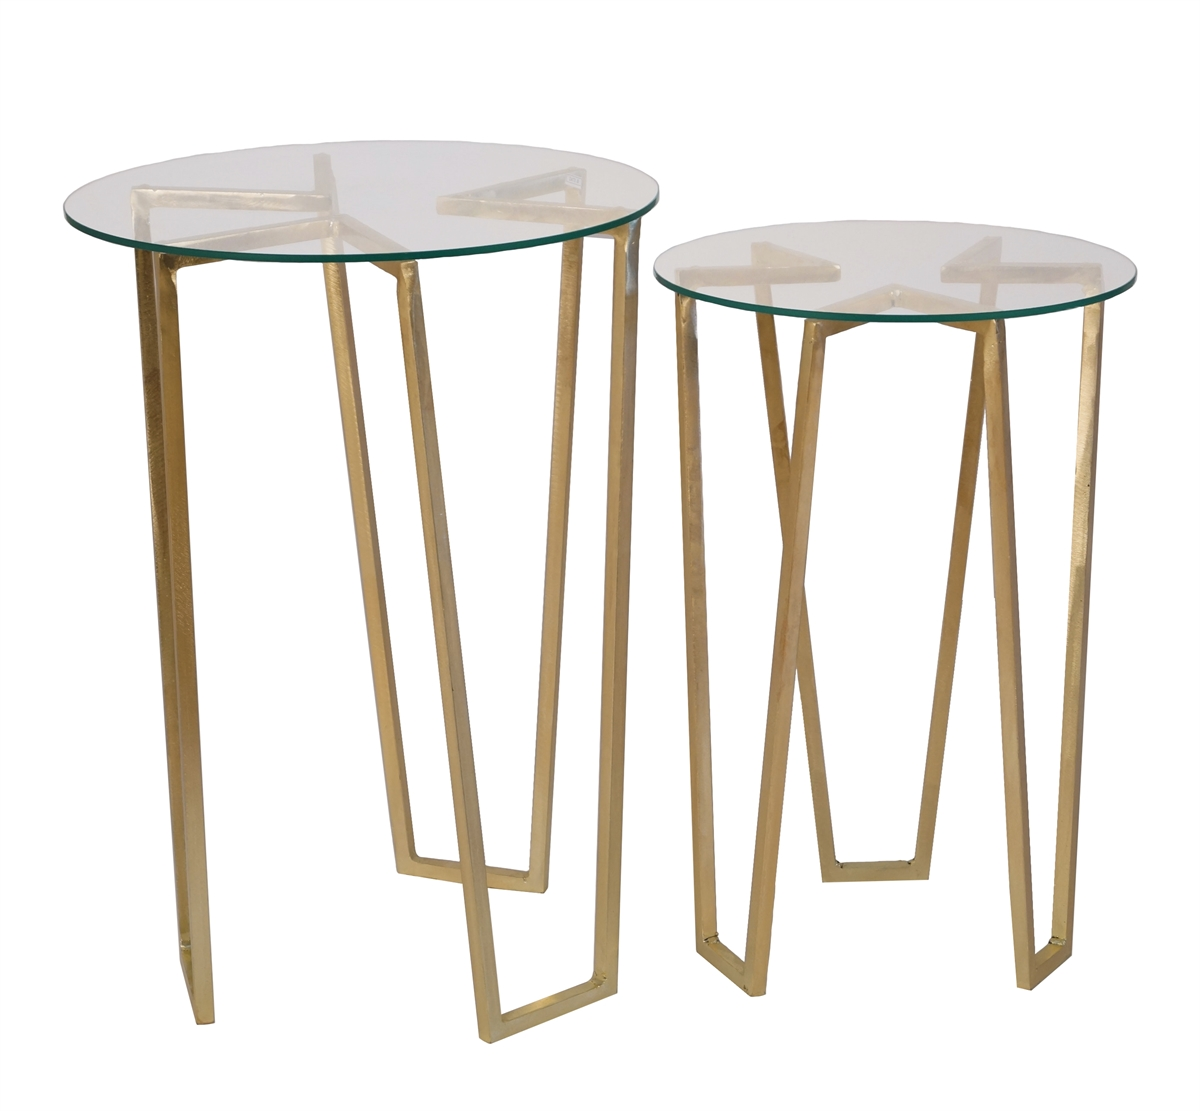 gold tripod accent tables glass top sagebrook home table diamond mirrored tiffany style chandelier round living room end cherry wood coffee and bedroom side decor west elm dining